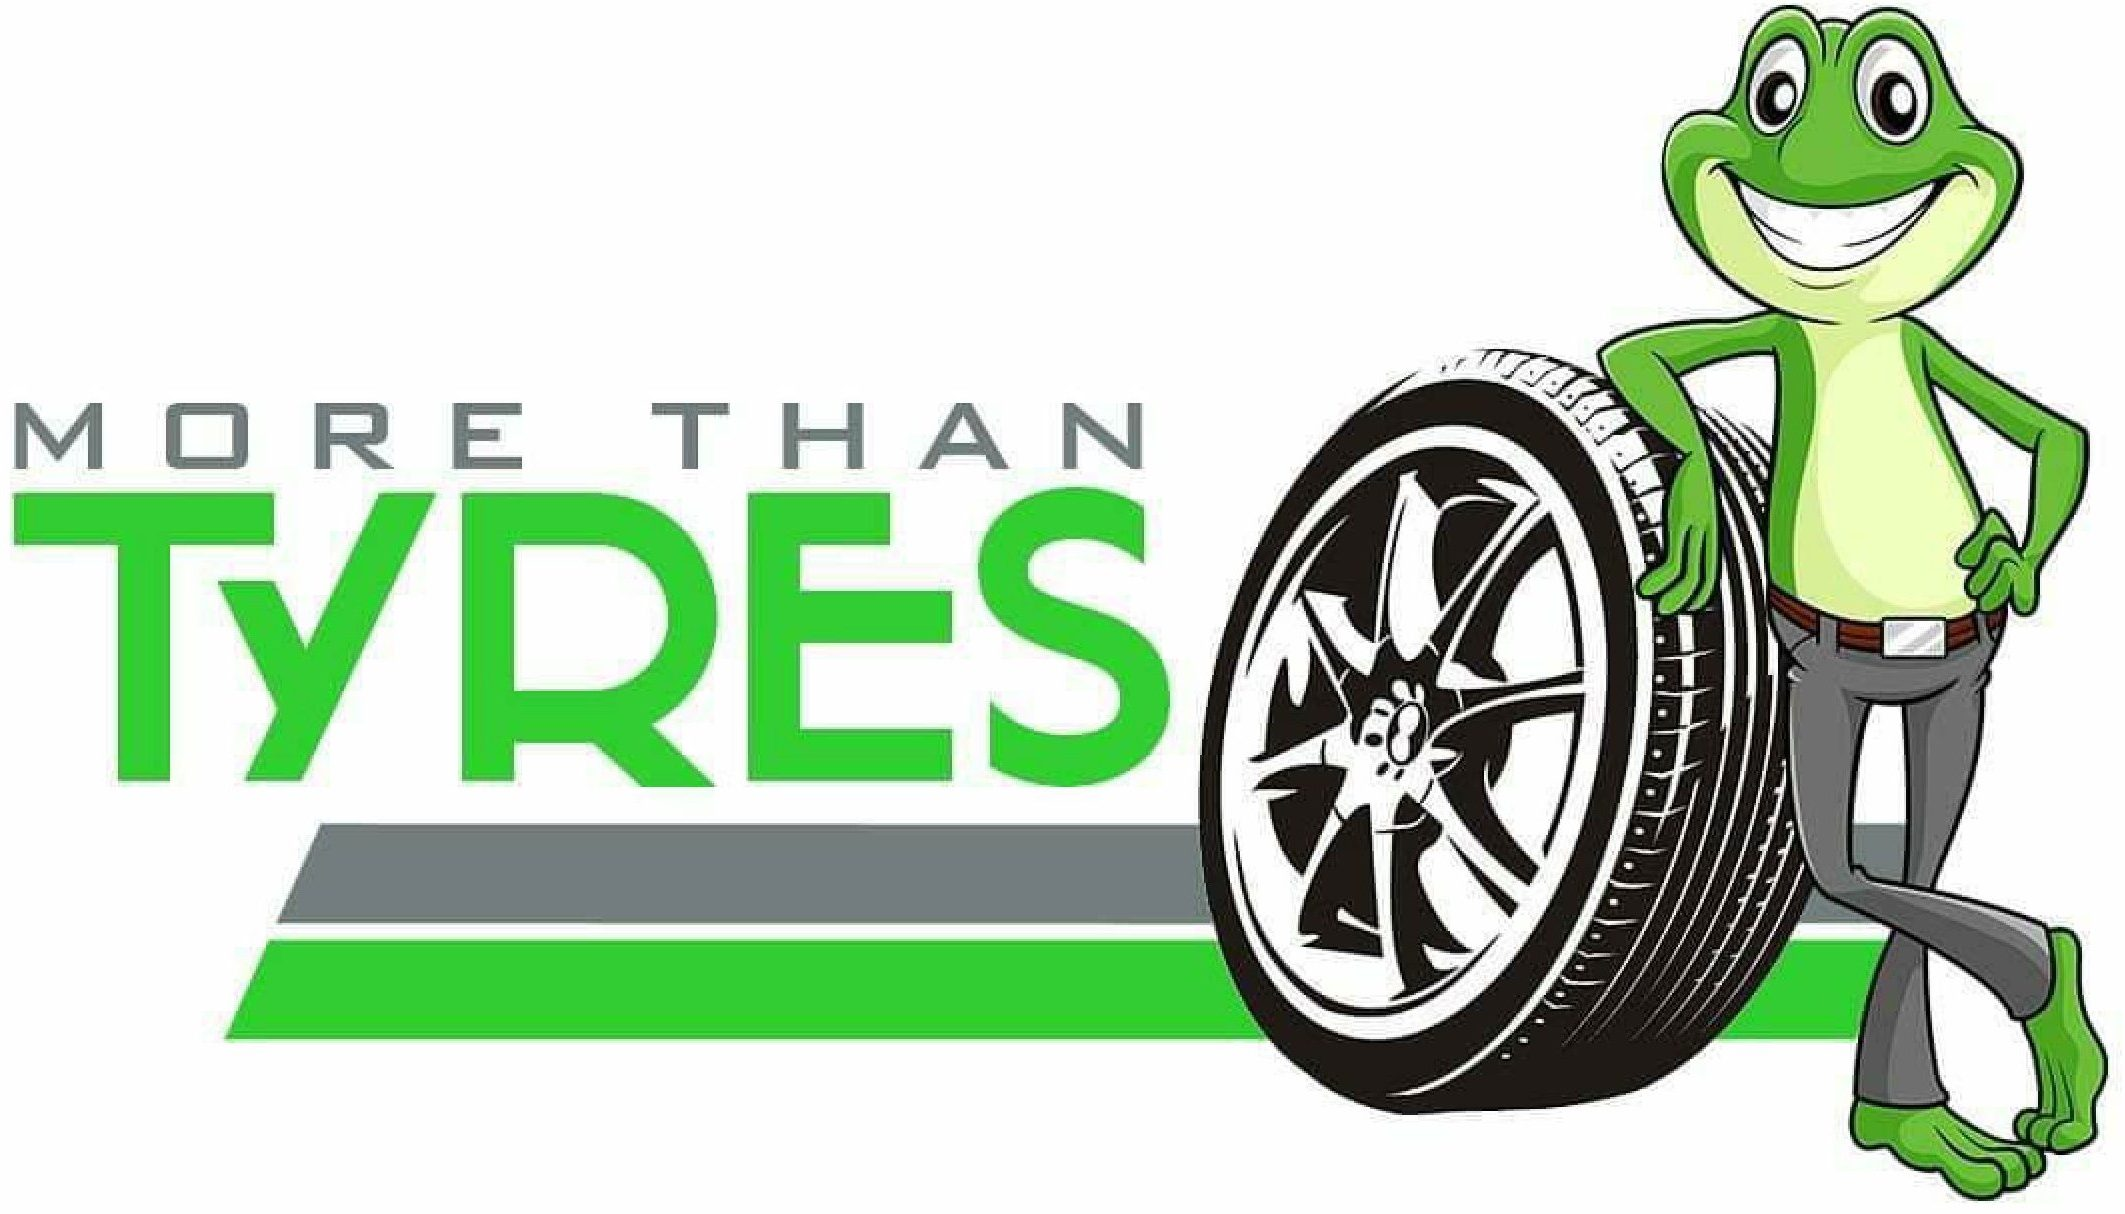 More Than Tyres